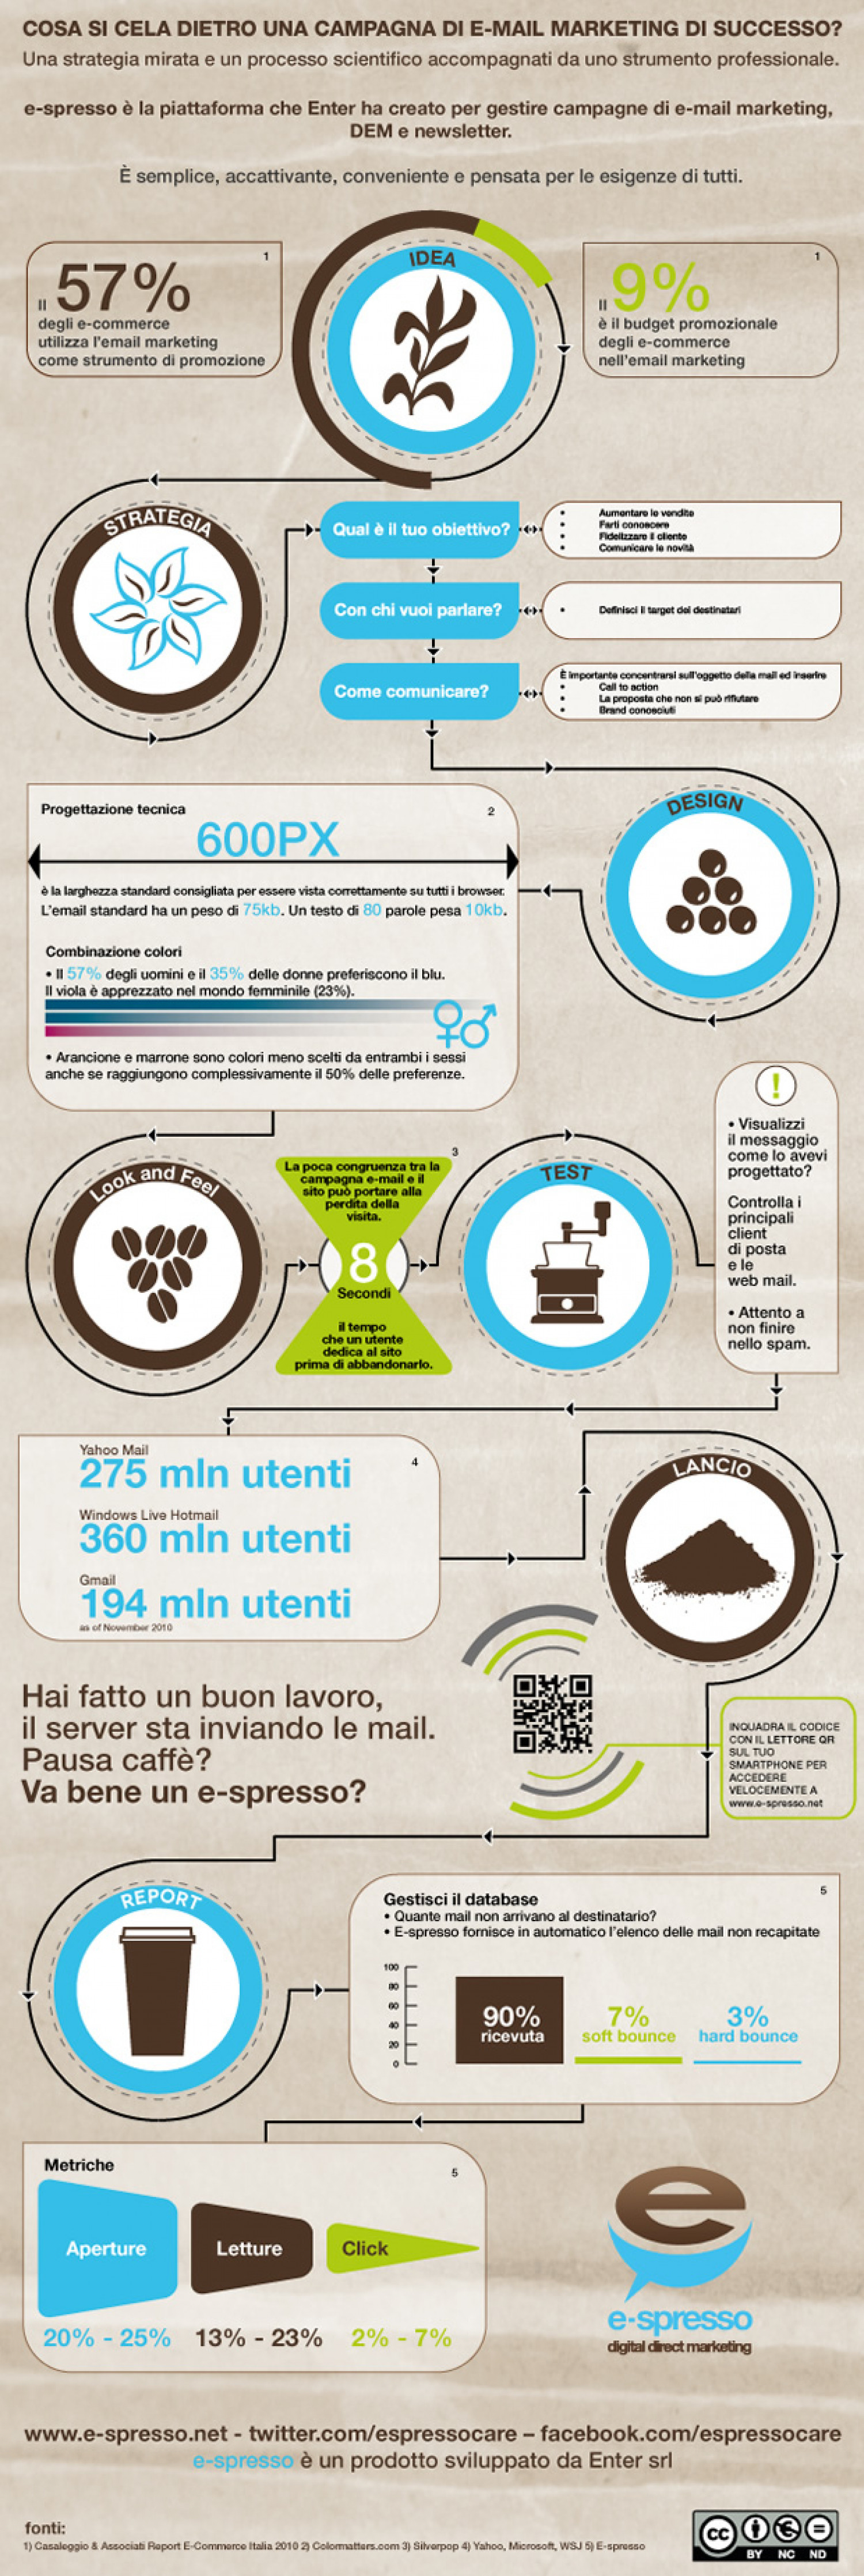 La campagna Email marketing perfetta Infographic